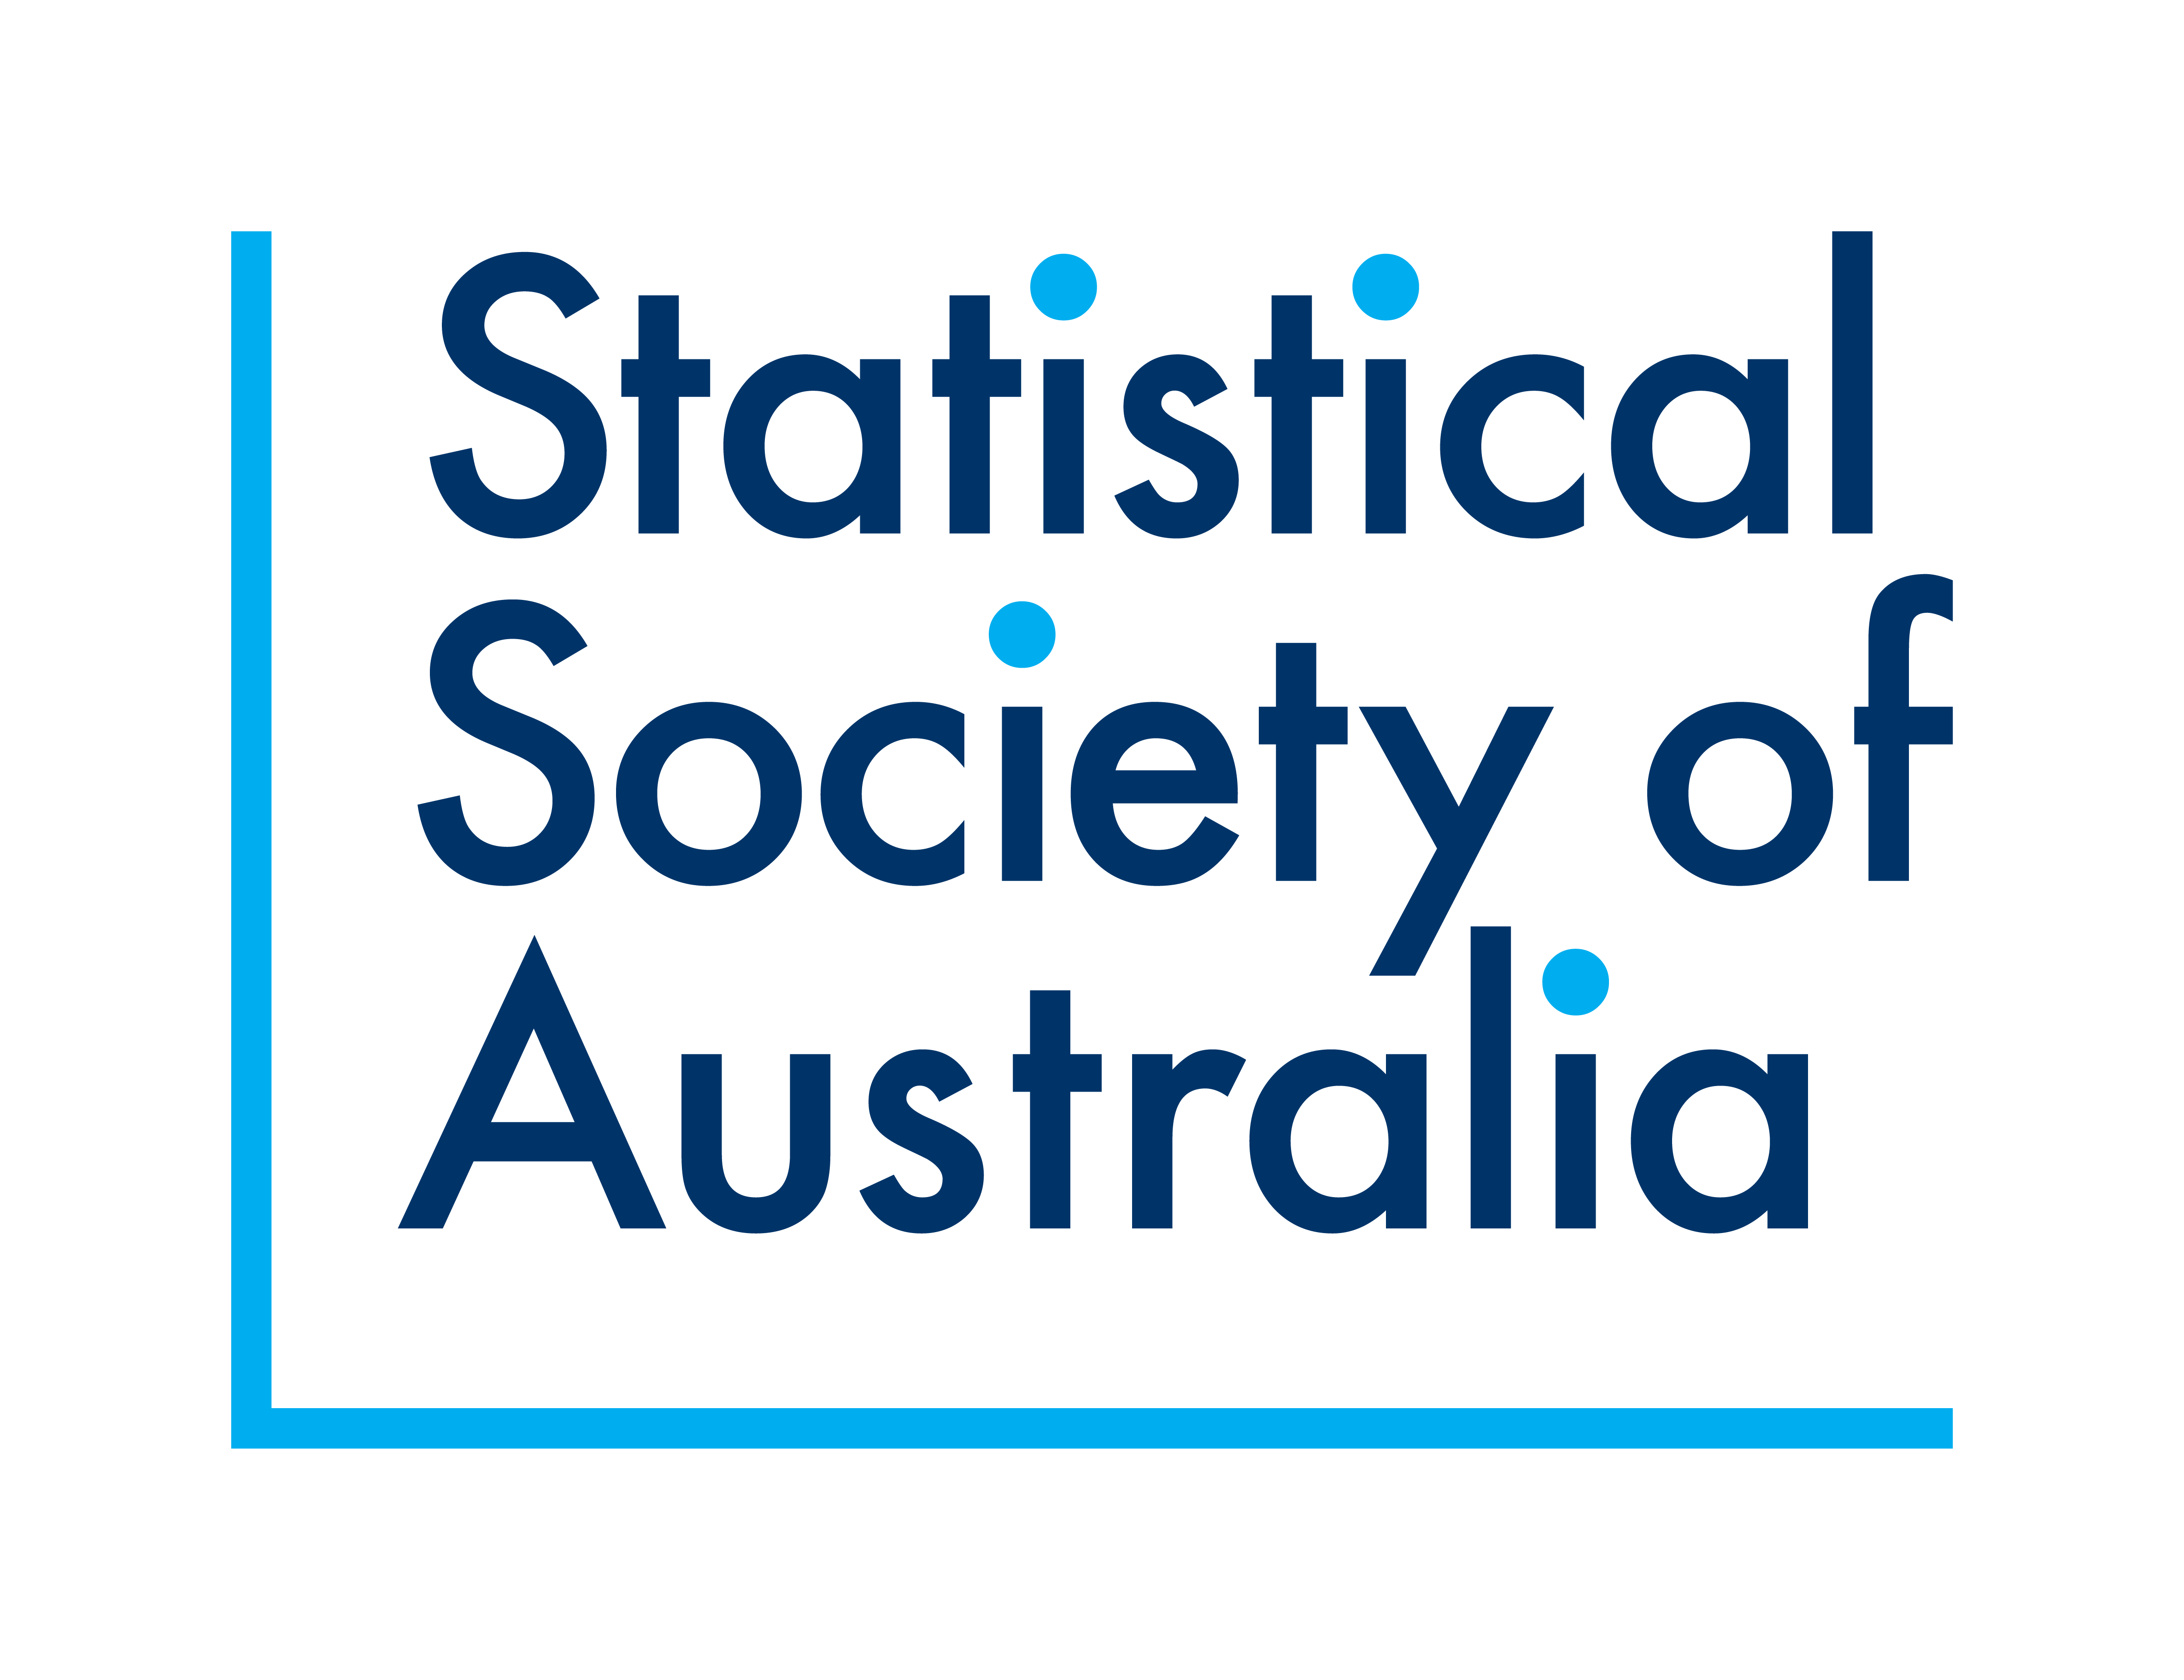 Statistical Society of Australian